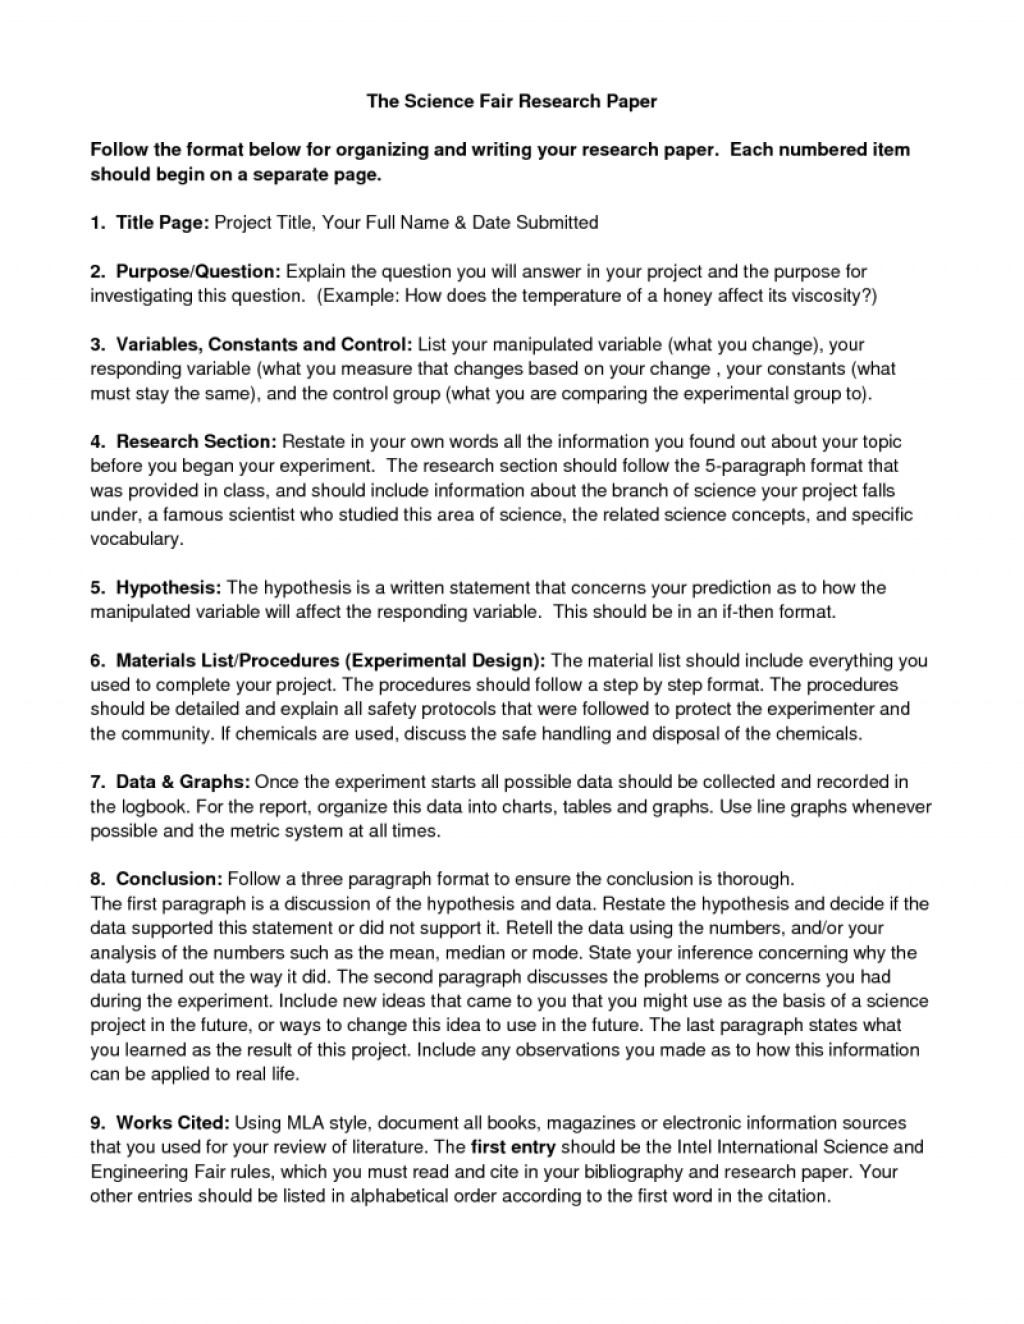 004 Ideas Of Science Fair Research Paper Outline Unique Political Guidelines Guidelinesresize8002c1035 How To Write Unforgettable A For High School Large